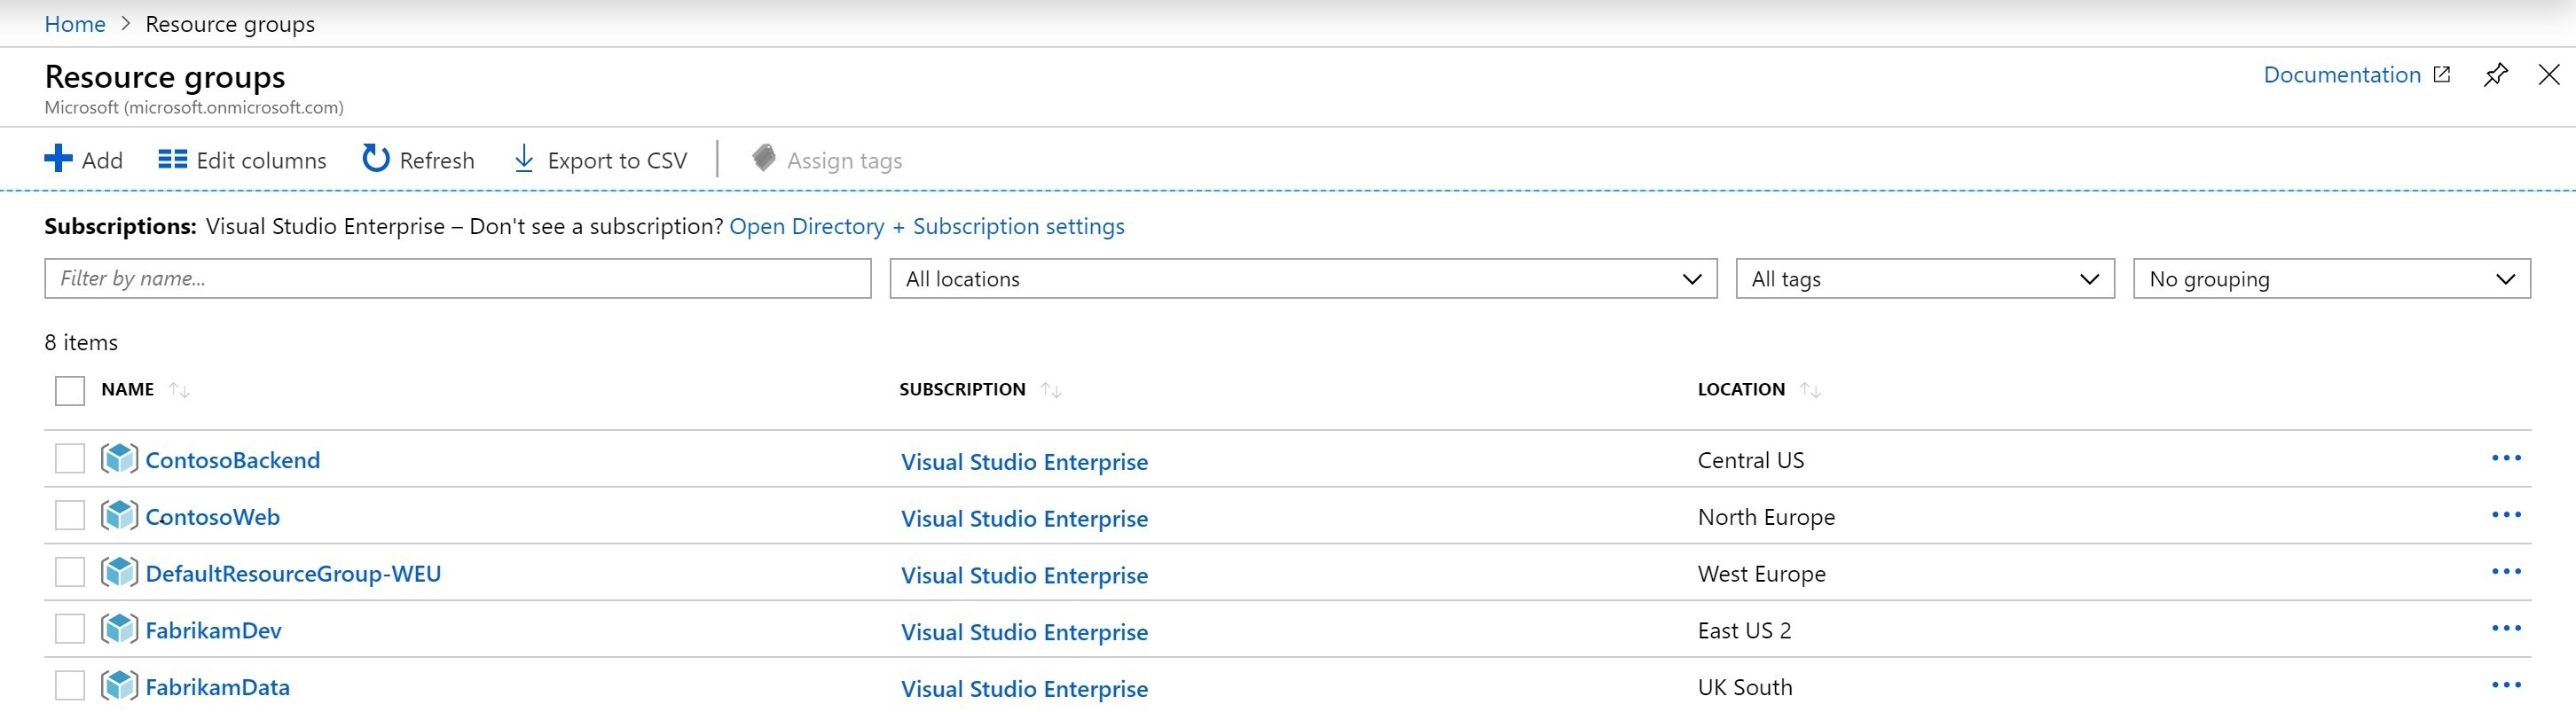 Azure Portal Resource Groups View